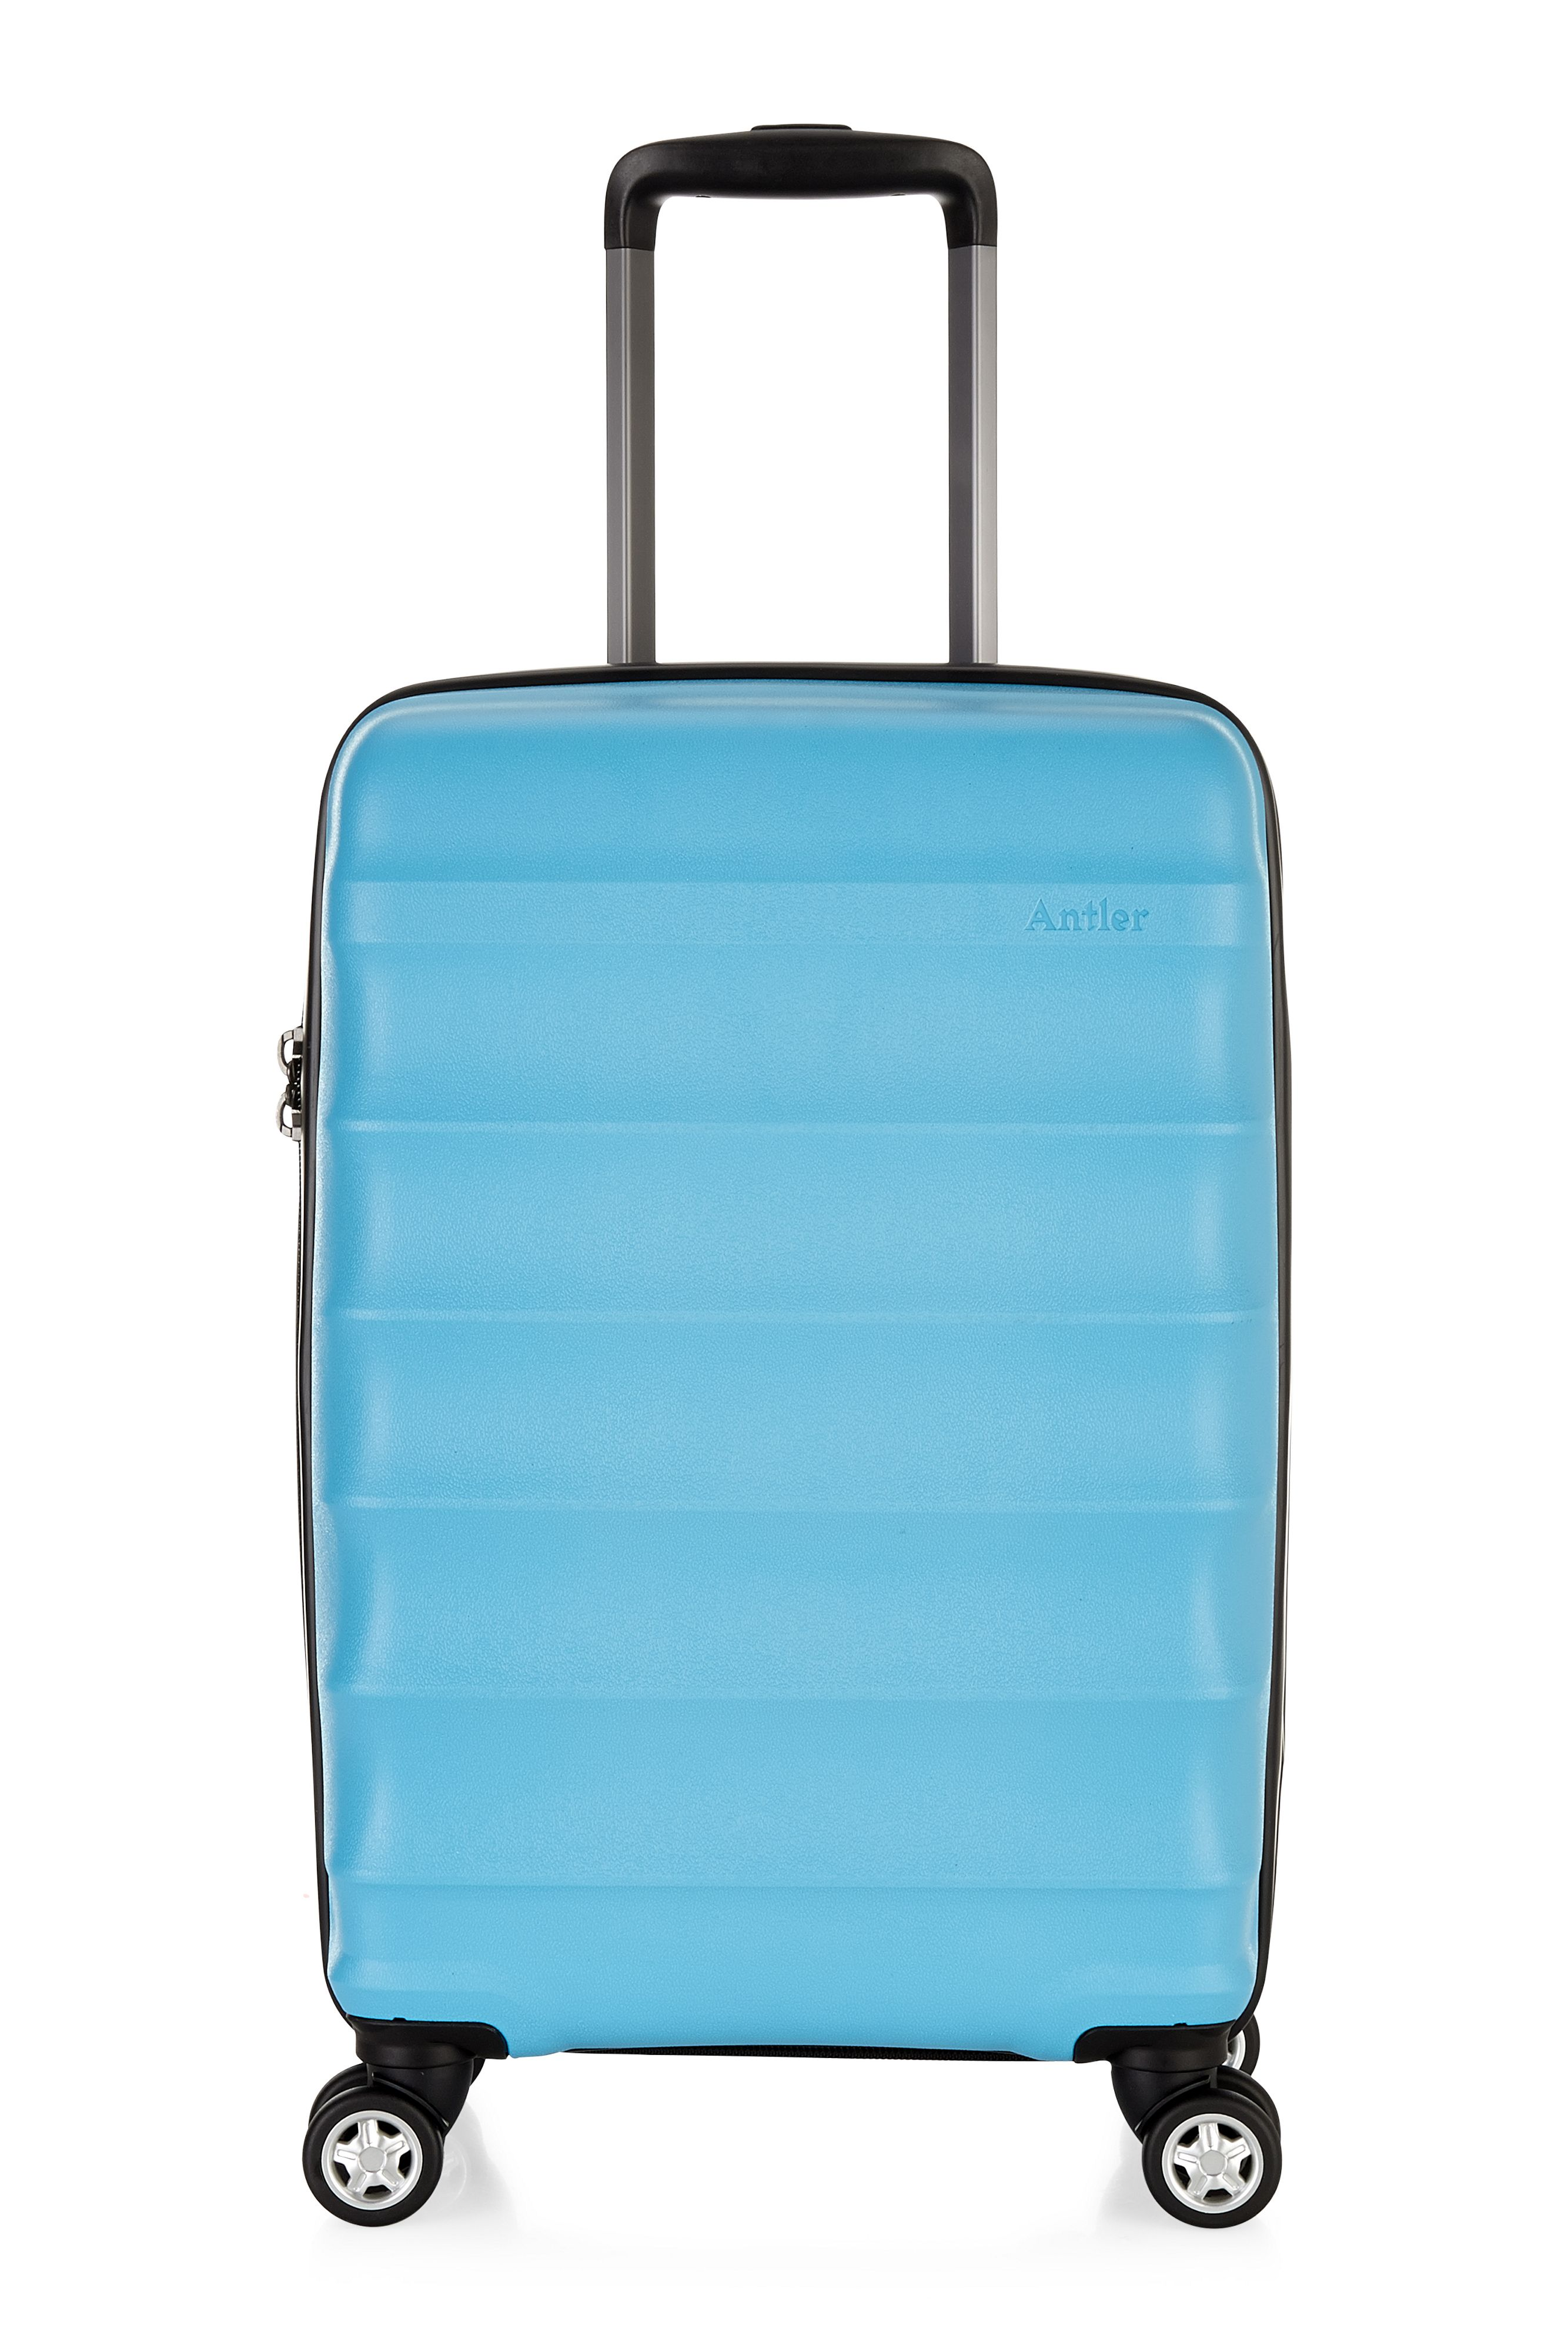 Antler Juno Turquoise Cabin Case, Turquoise